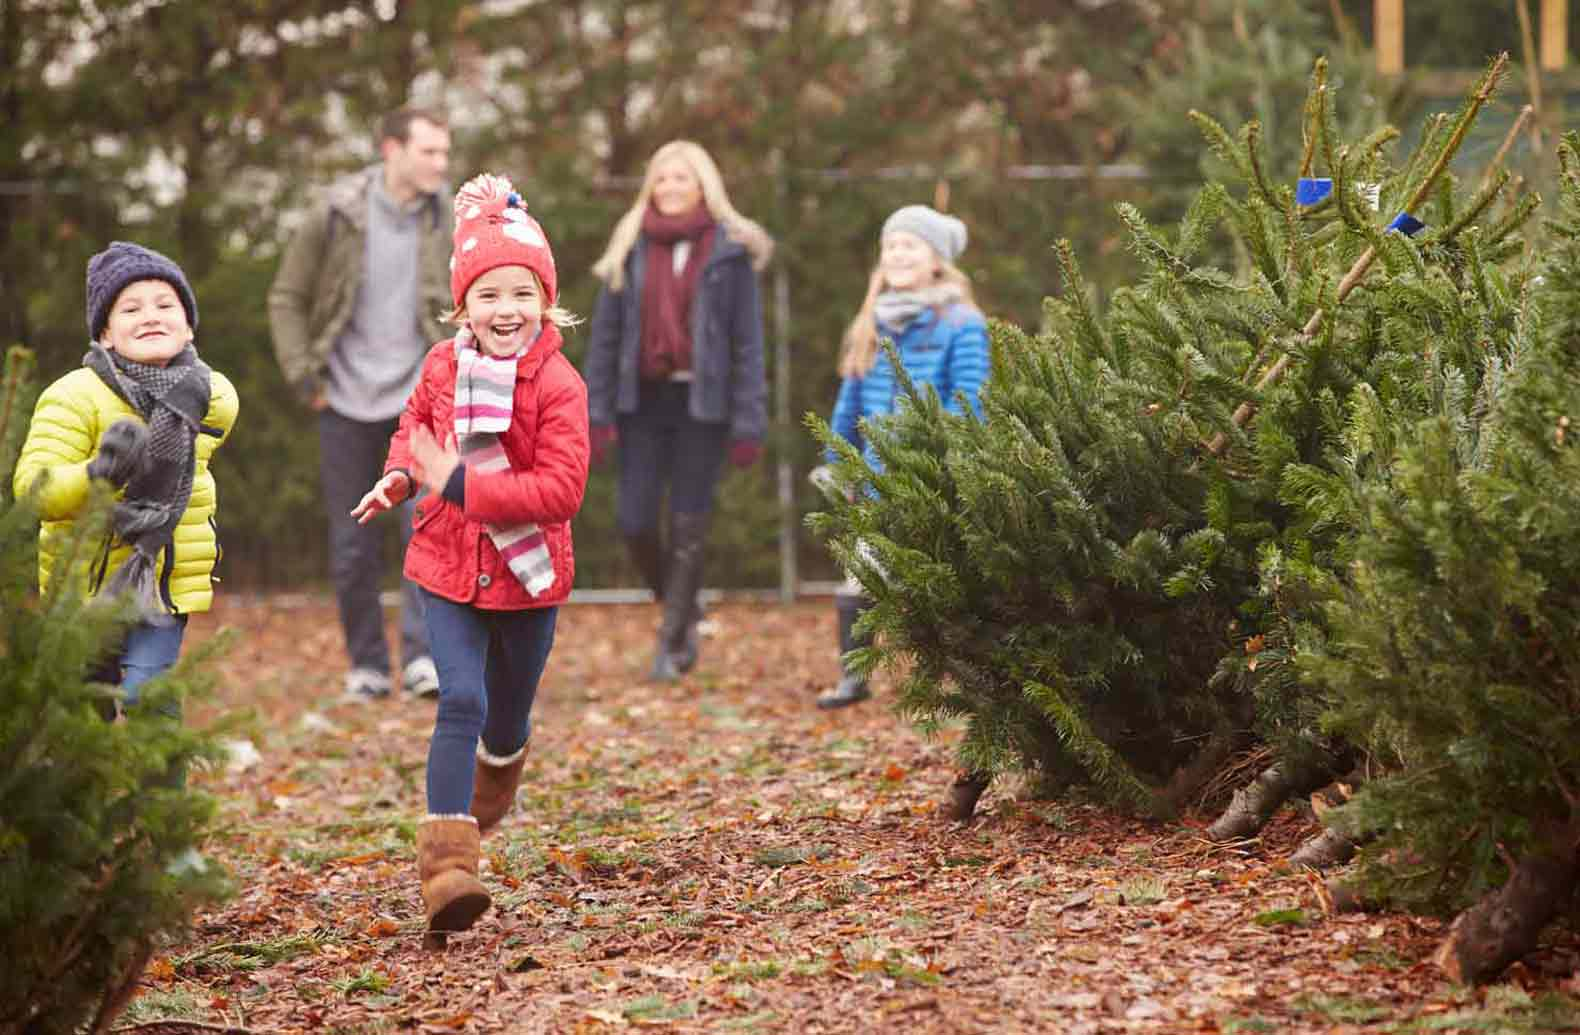 7-Holiday-Traditions-to-Start-With-Your-Family.jpg